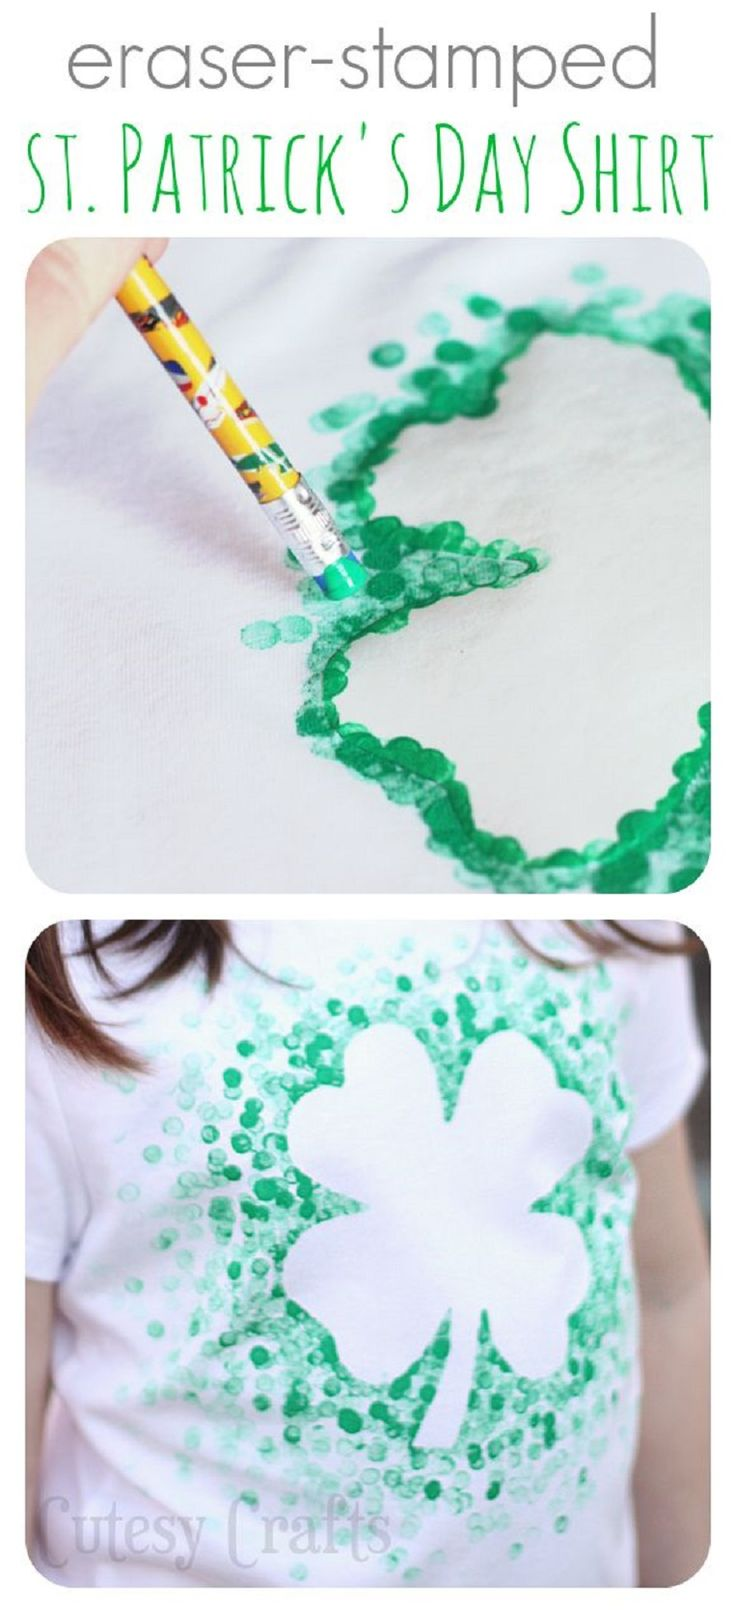 Eraser-Stamped St. Patrick's Day Shirt - Made with Freezer Paper and a pencil eraser - 20 Green Attire DIY Saint Patrick's Day Party Ideas